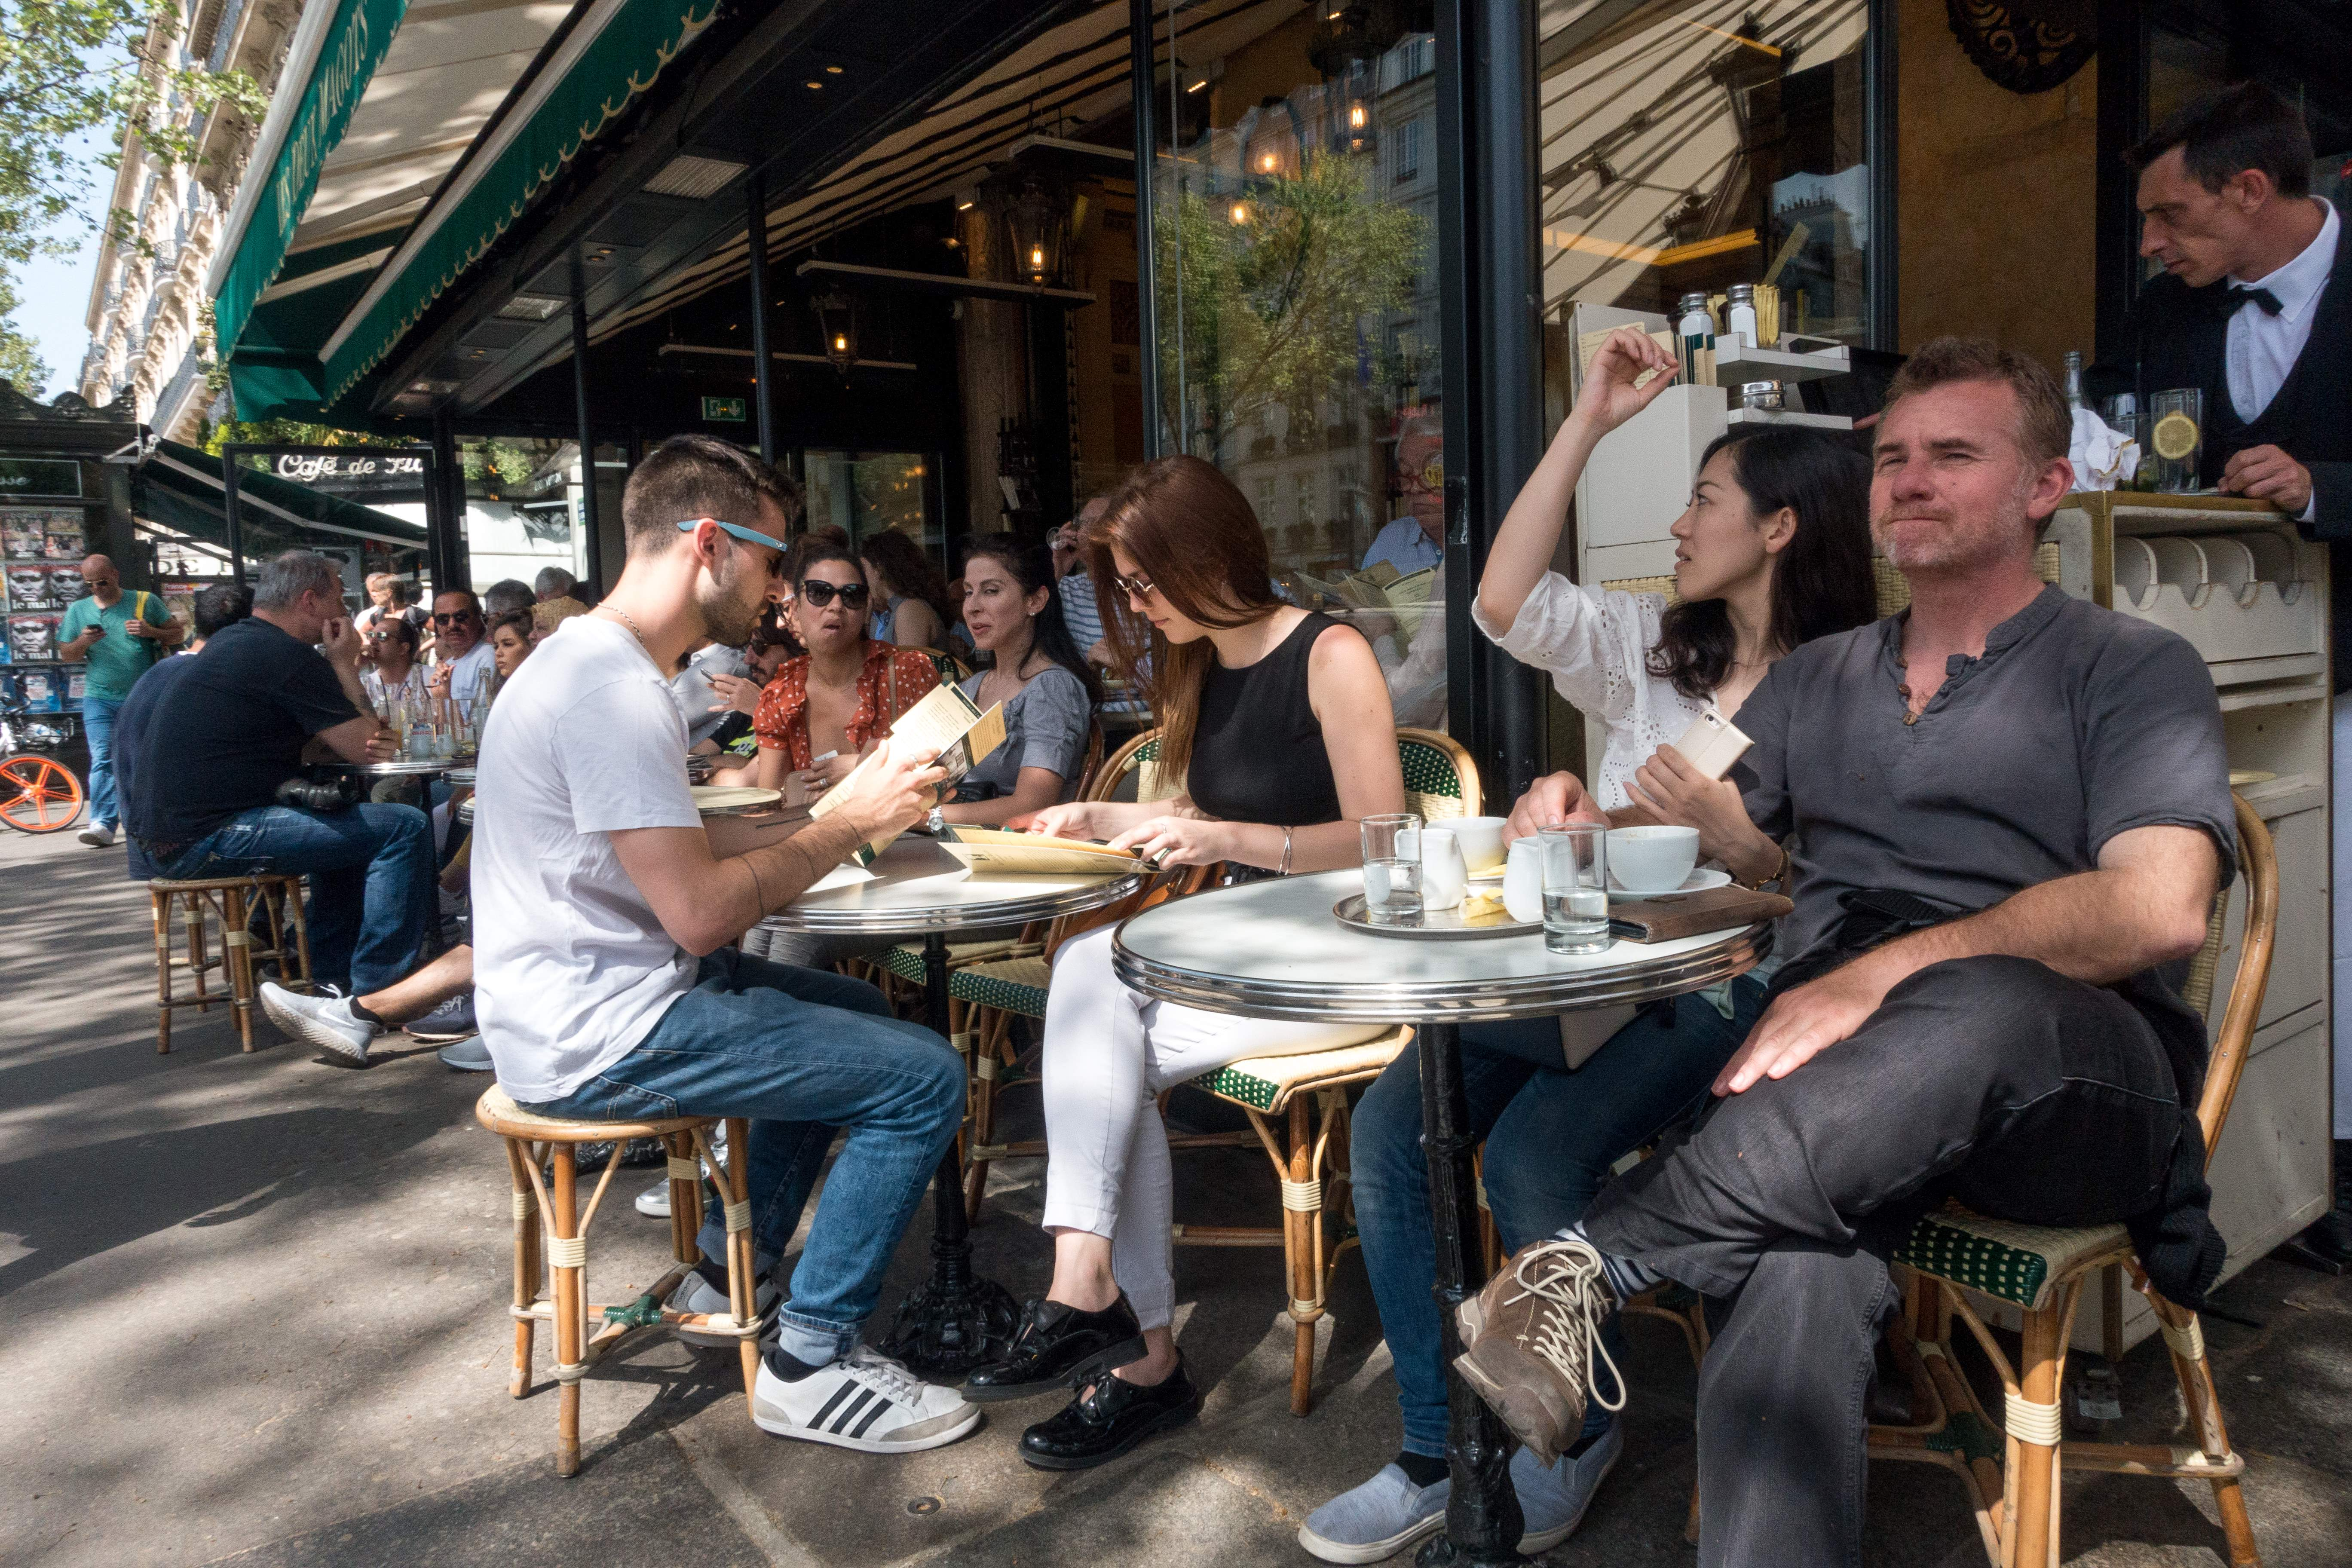 People enjoy the sun and warm spring temperatures at the terrace of the French cafe  Les deux magots  at the Saint-Germain-des-Pres district in Paris, on April 22, 2018.